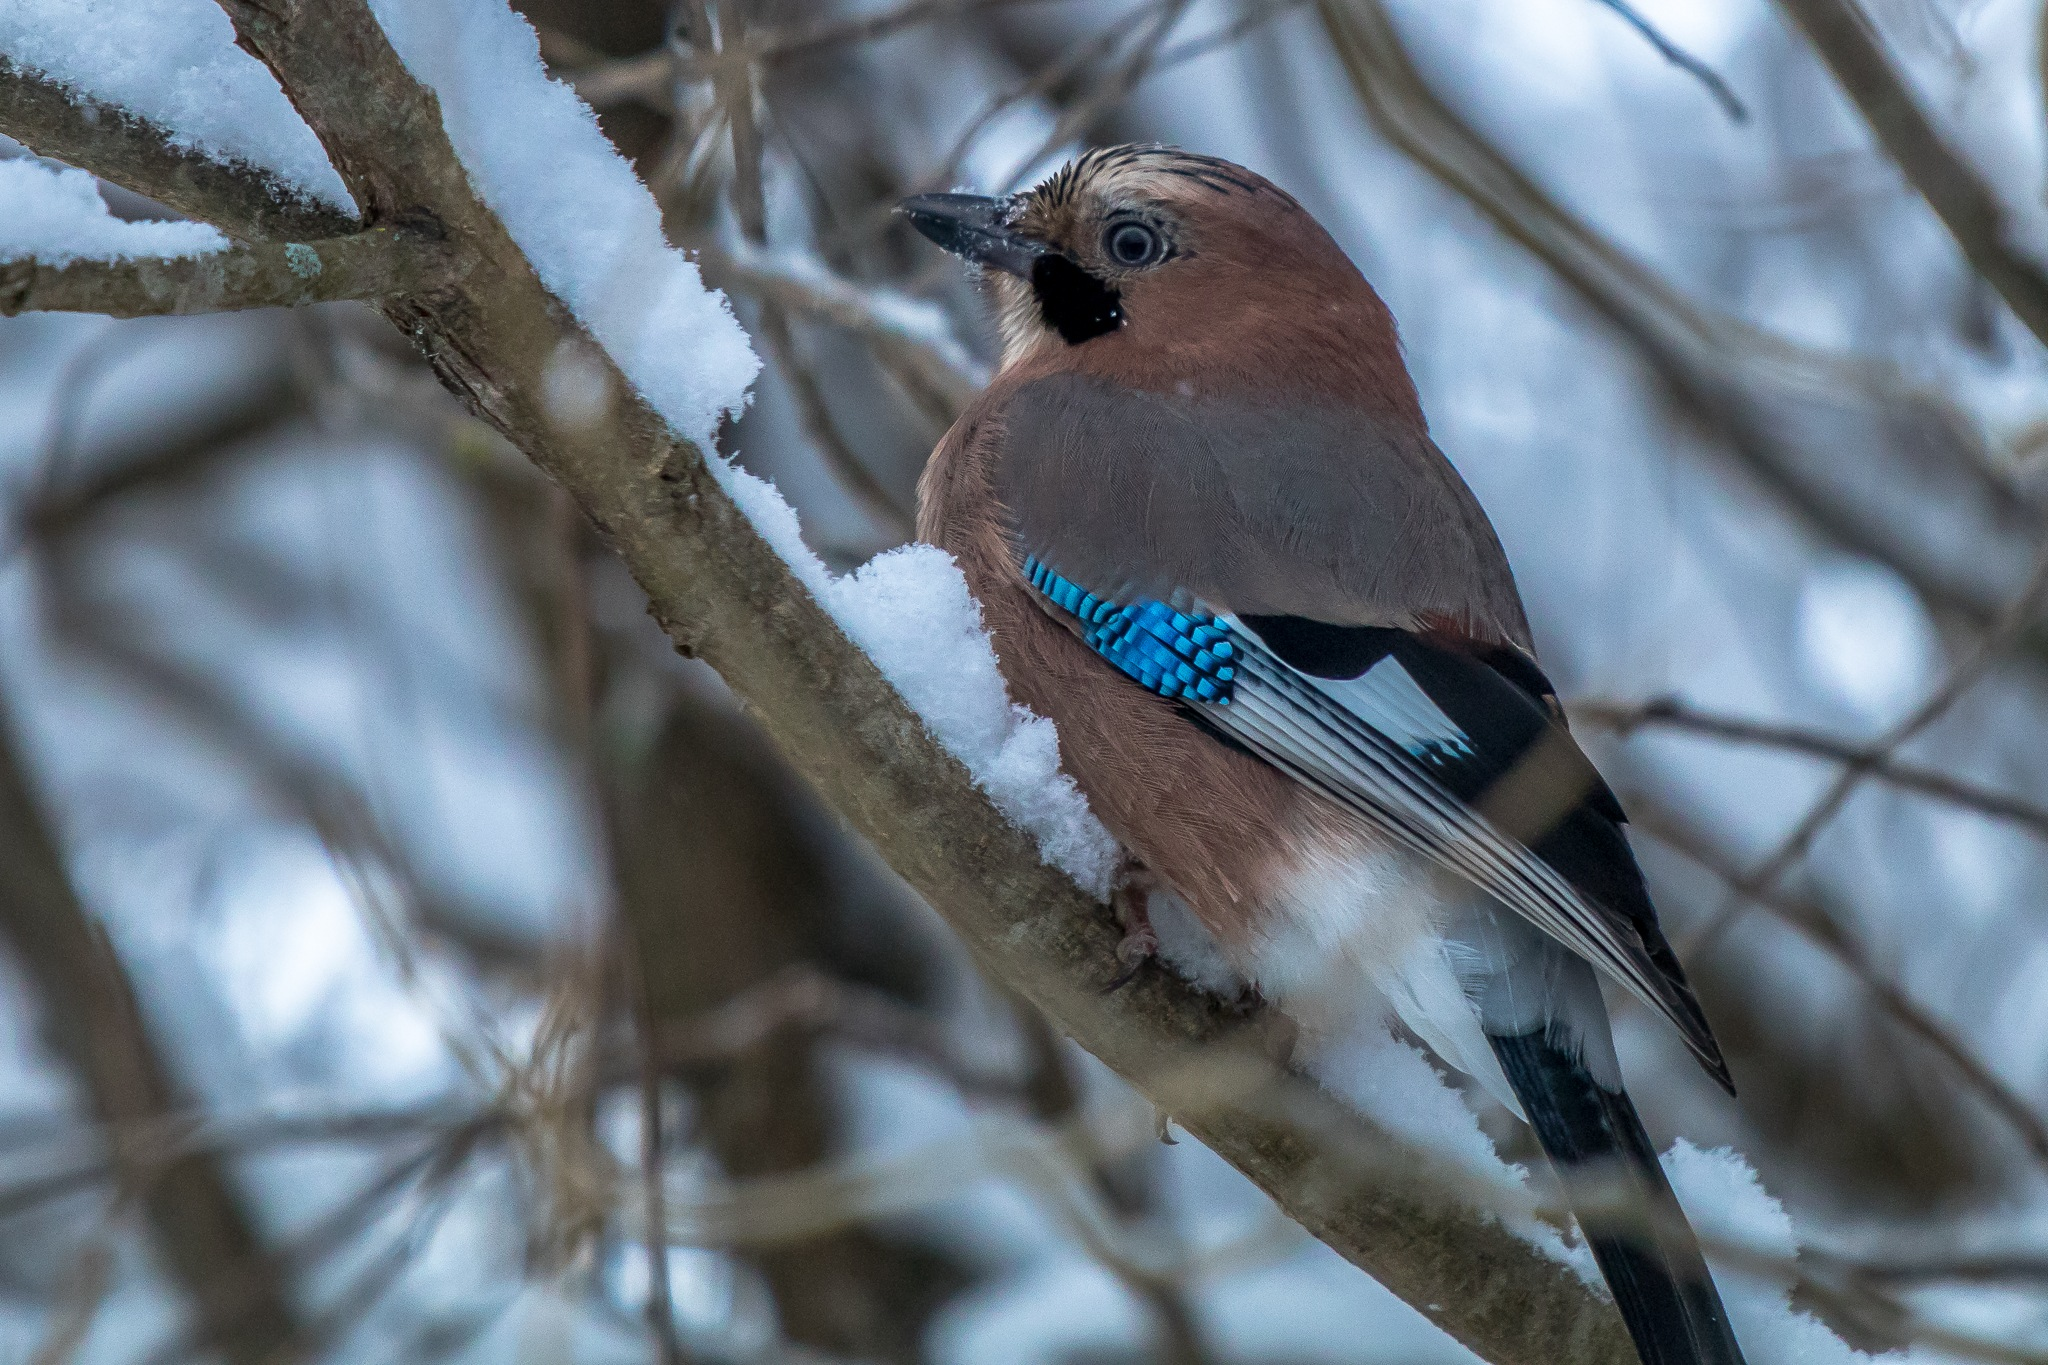 Jay by Anne_V